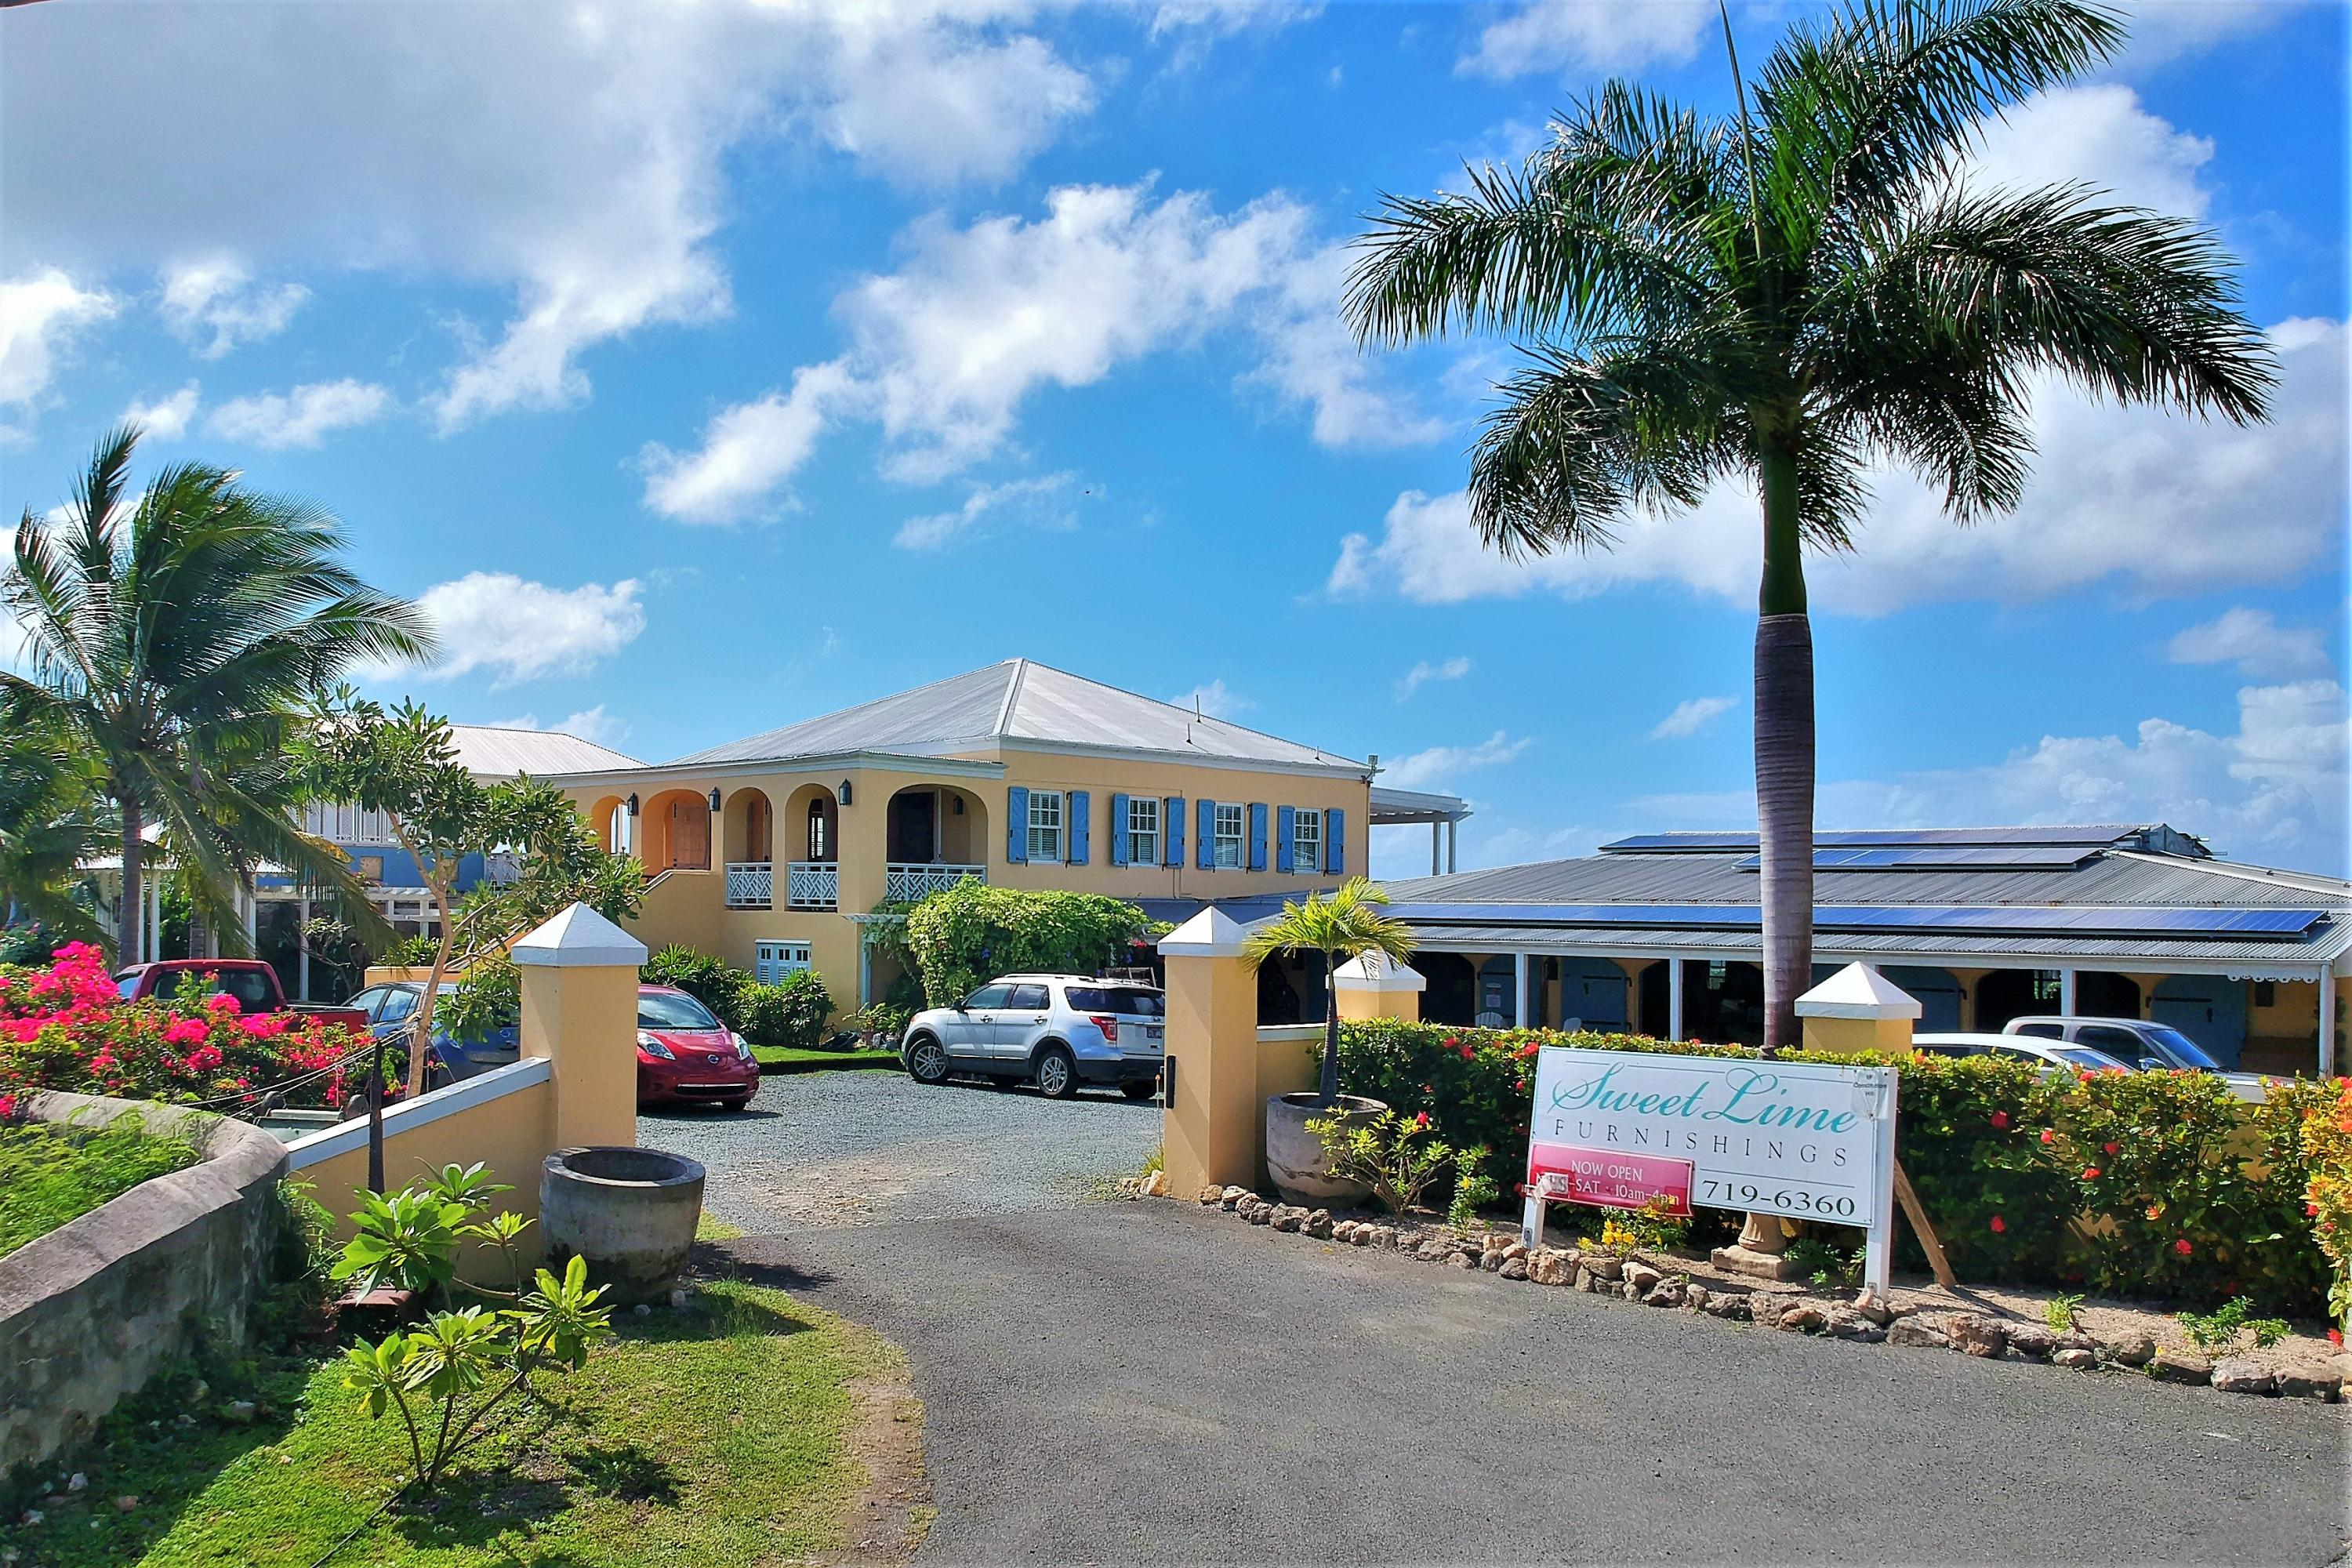 Multi-Family Home for Sale at 6F & 6G Constitution Hill QU 6F & 6G Constitution Hill QU St Croix, Virgin Islands 00820 United States Virgin Islands